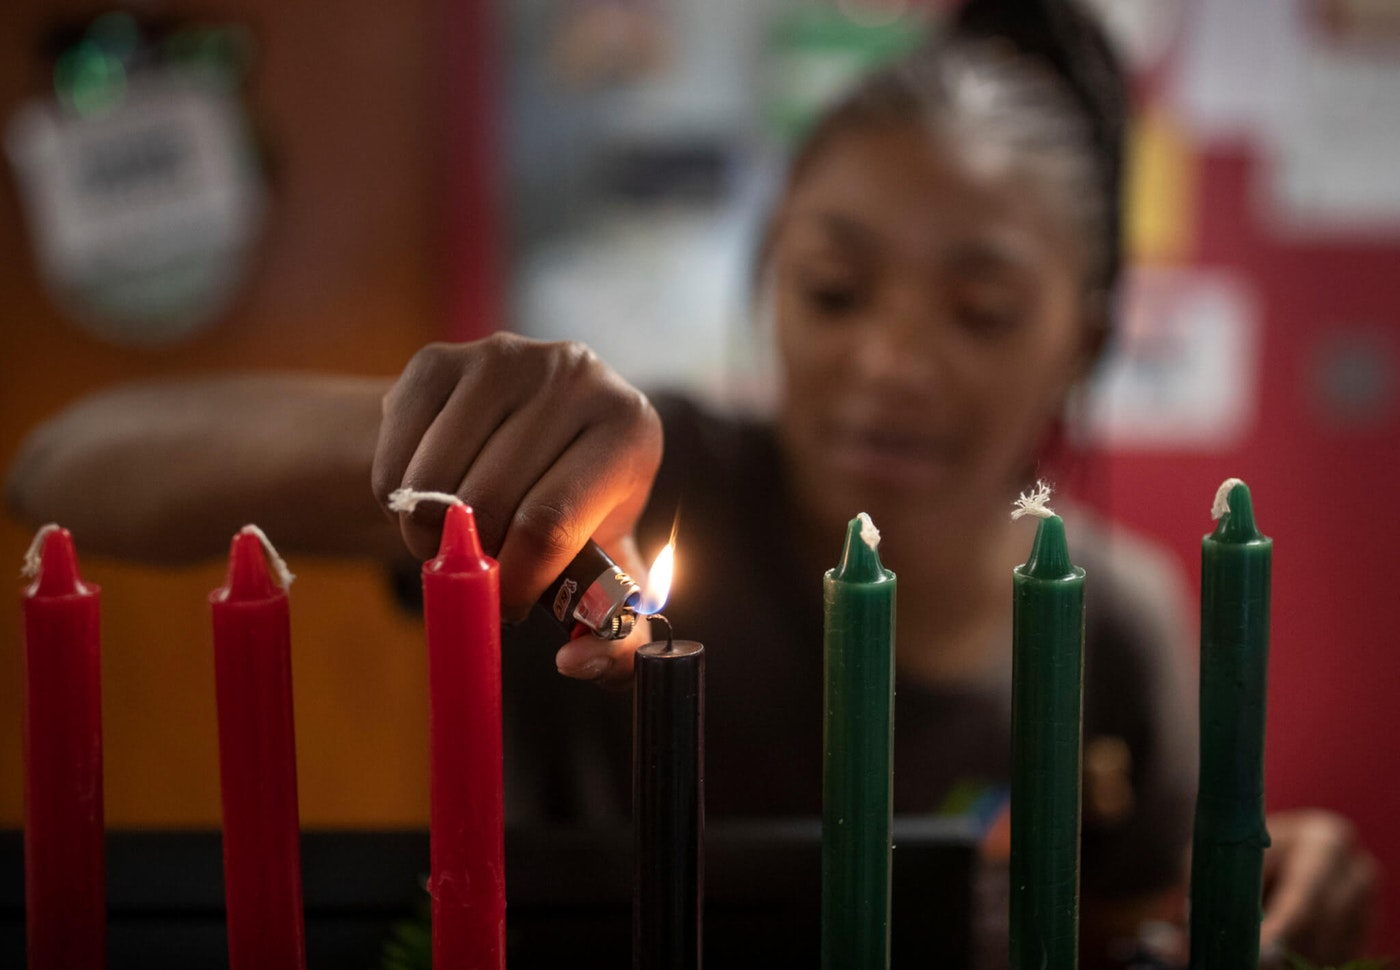 Kamora Shambley lights the first of seven candles during a celebration of the first day of Kwanzaa at the Martin Luther King Recreation Center Wednesday, December 26, 2018, in St. Paul, MN. (Photo By Jerry Holt/Star Tribune via Getty Images)